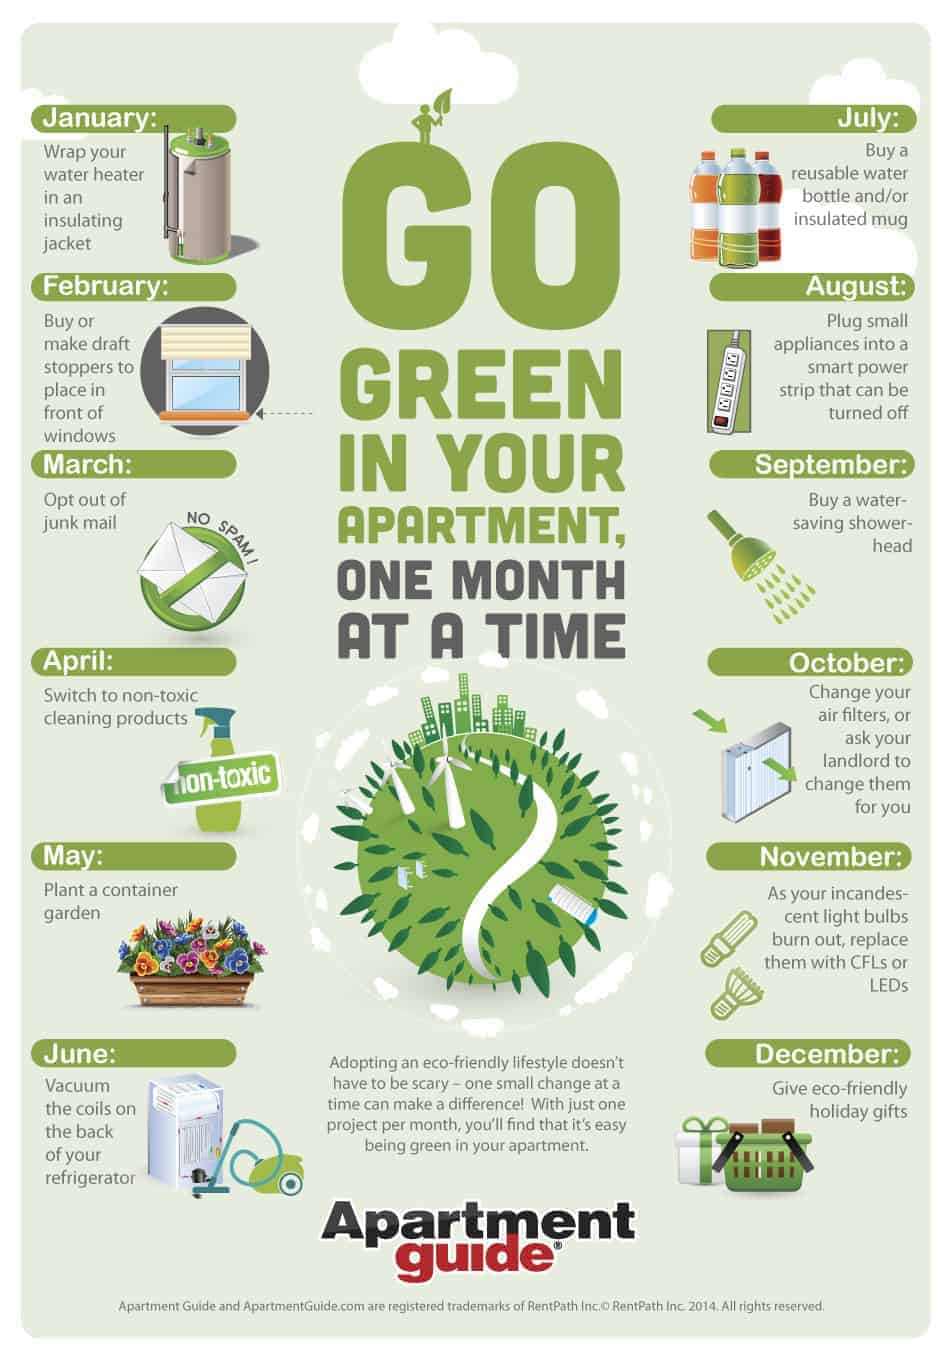 Superb Go Green In Your Apartment Month By Month (Infographic) | ApartmentGuide.com